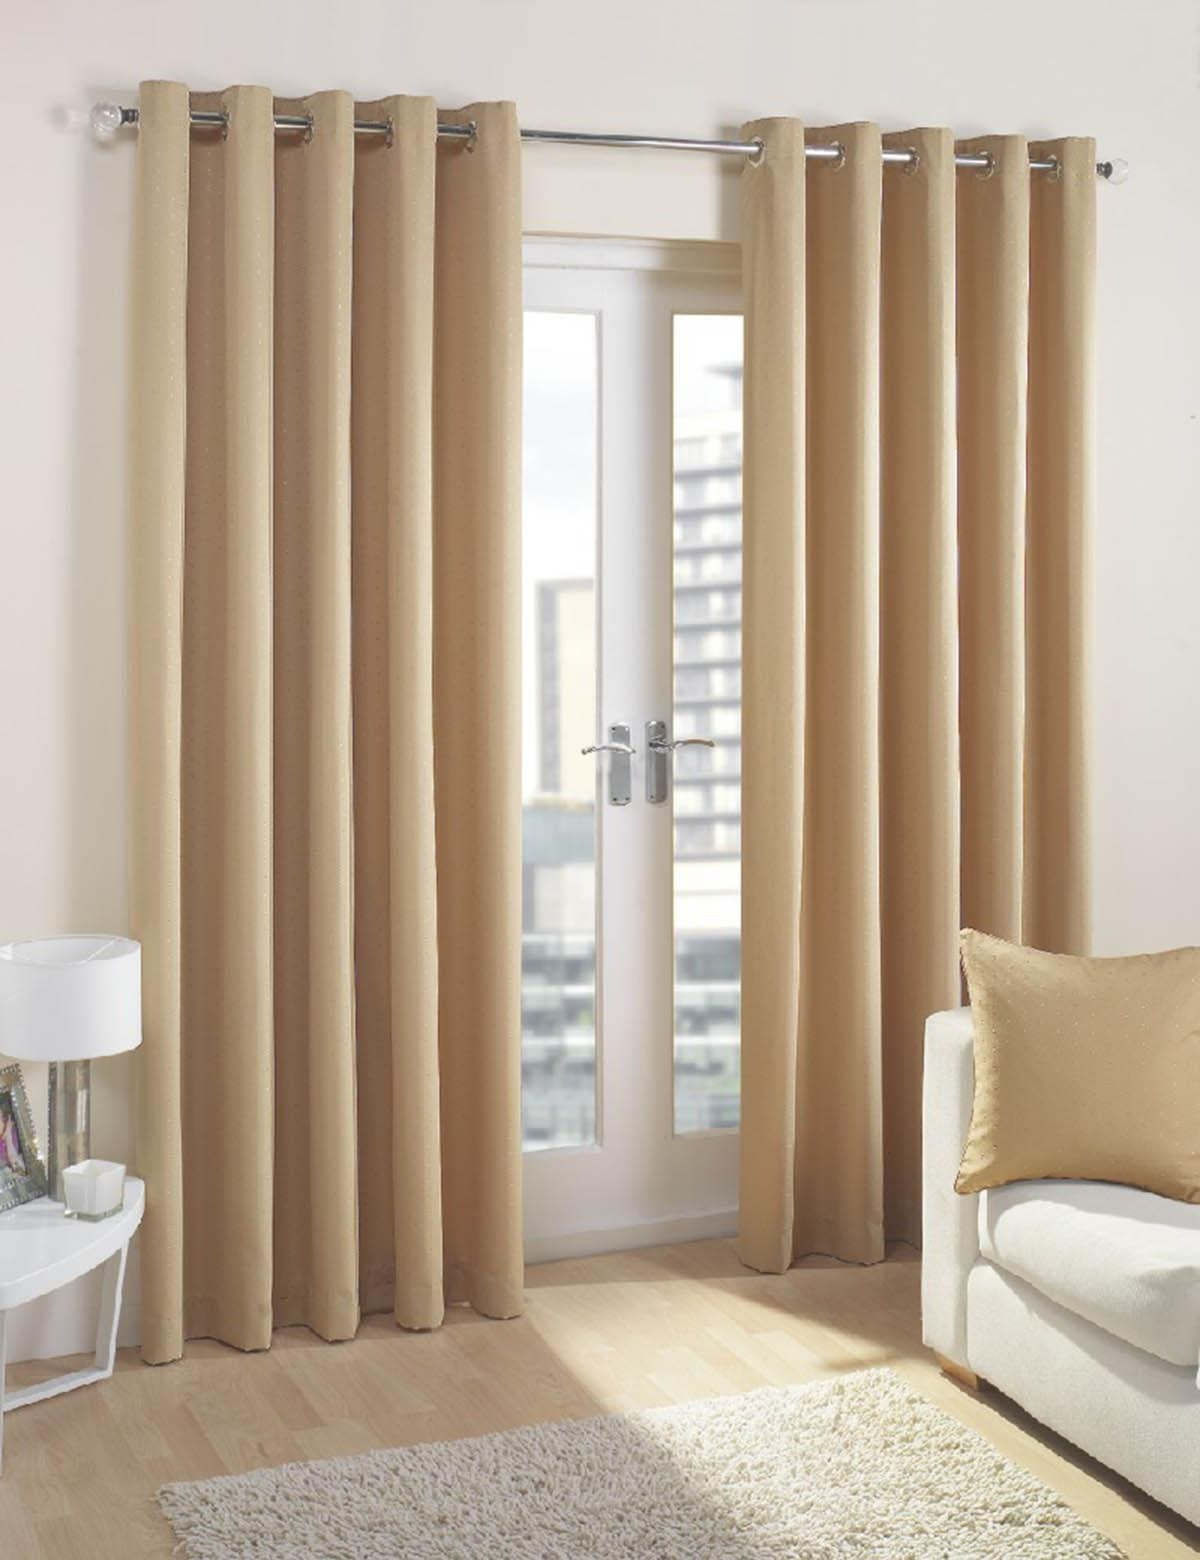 Featured Image of Cream And Gold Eyelet Curtains